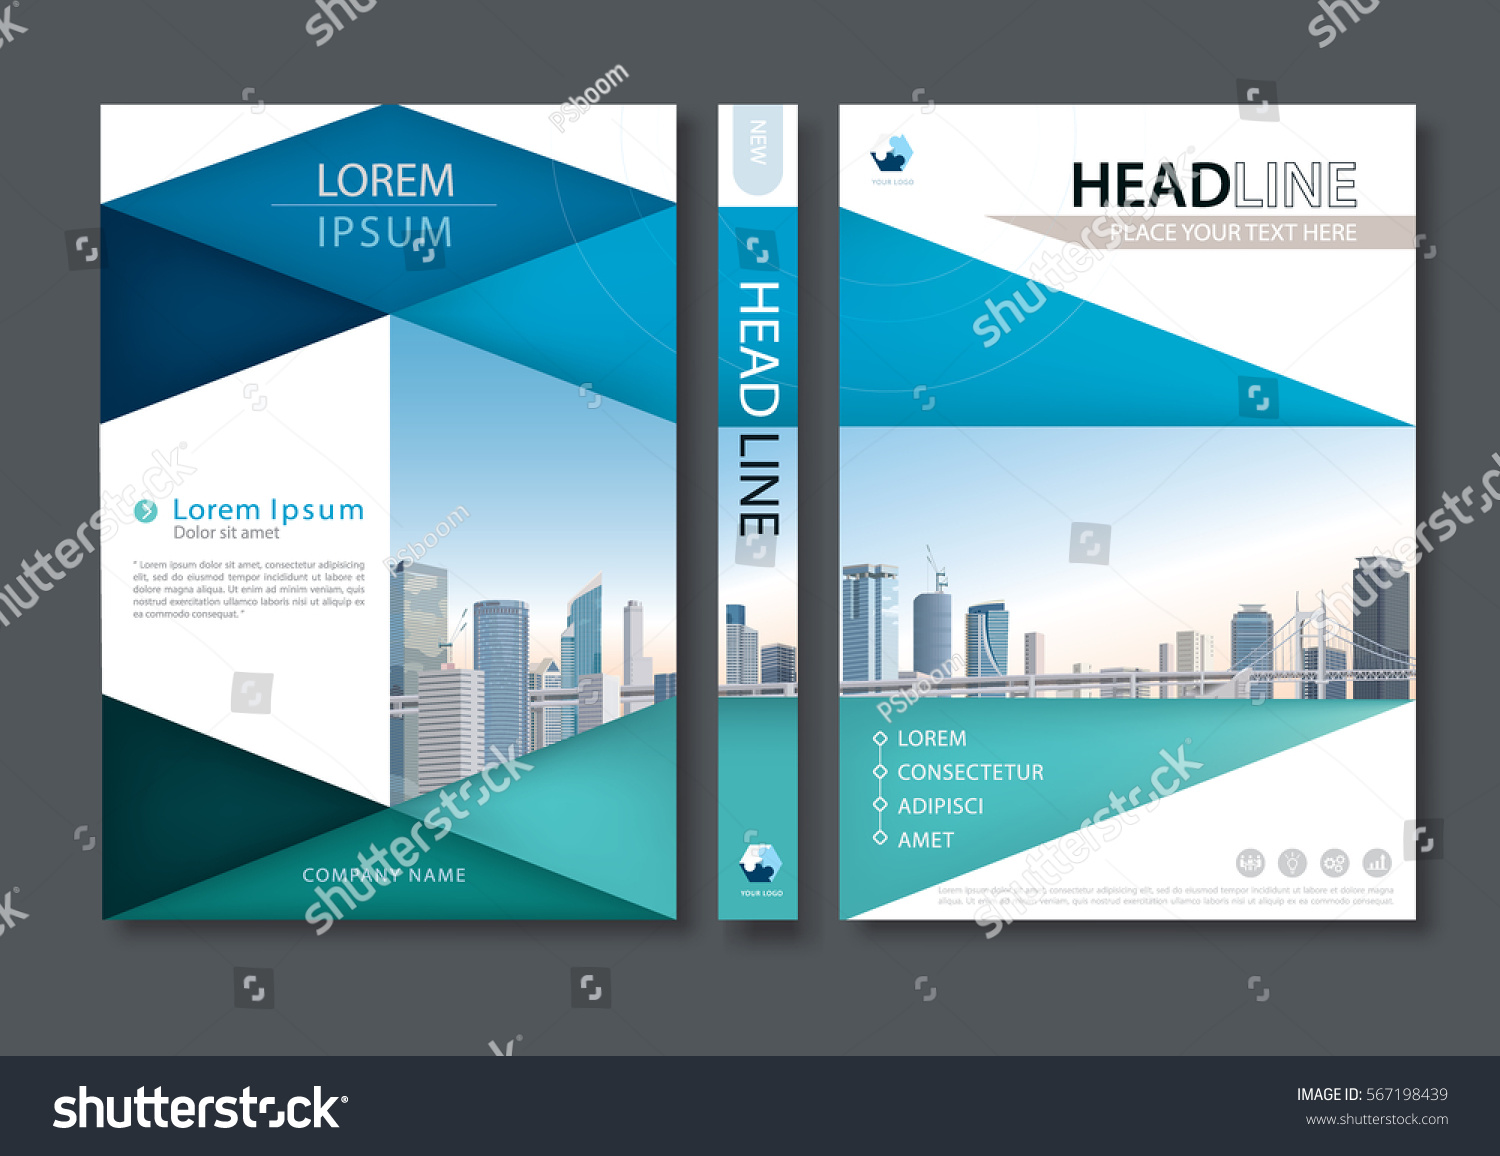 blue green flyer design template vector stock vector  blue green flyer design template vector leaflet cover presentation abstract flat background book cover